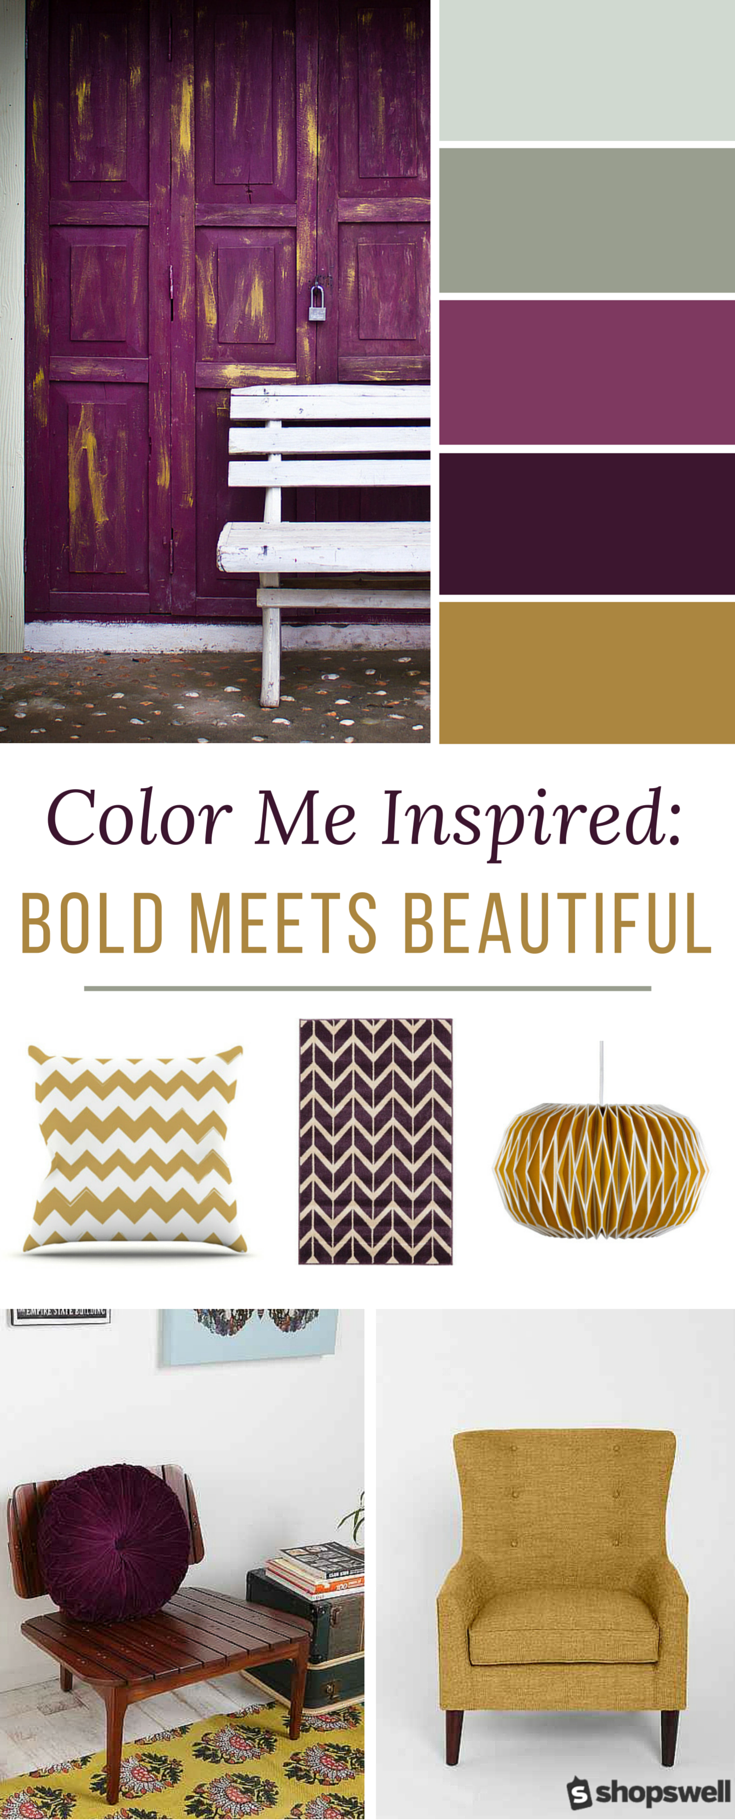 3 Home Decor Trends For Spring Brittany Stager: Color Me Inspired: Bold Meets Beautiful Home Decor